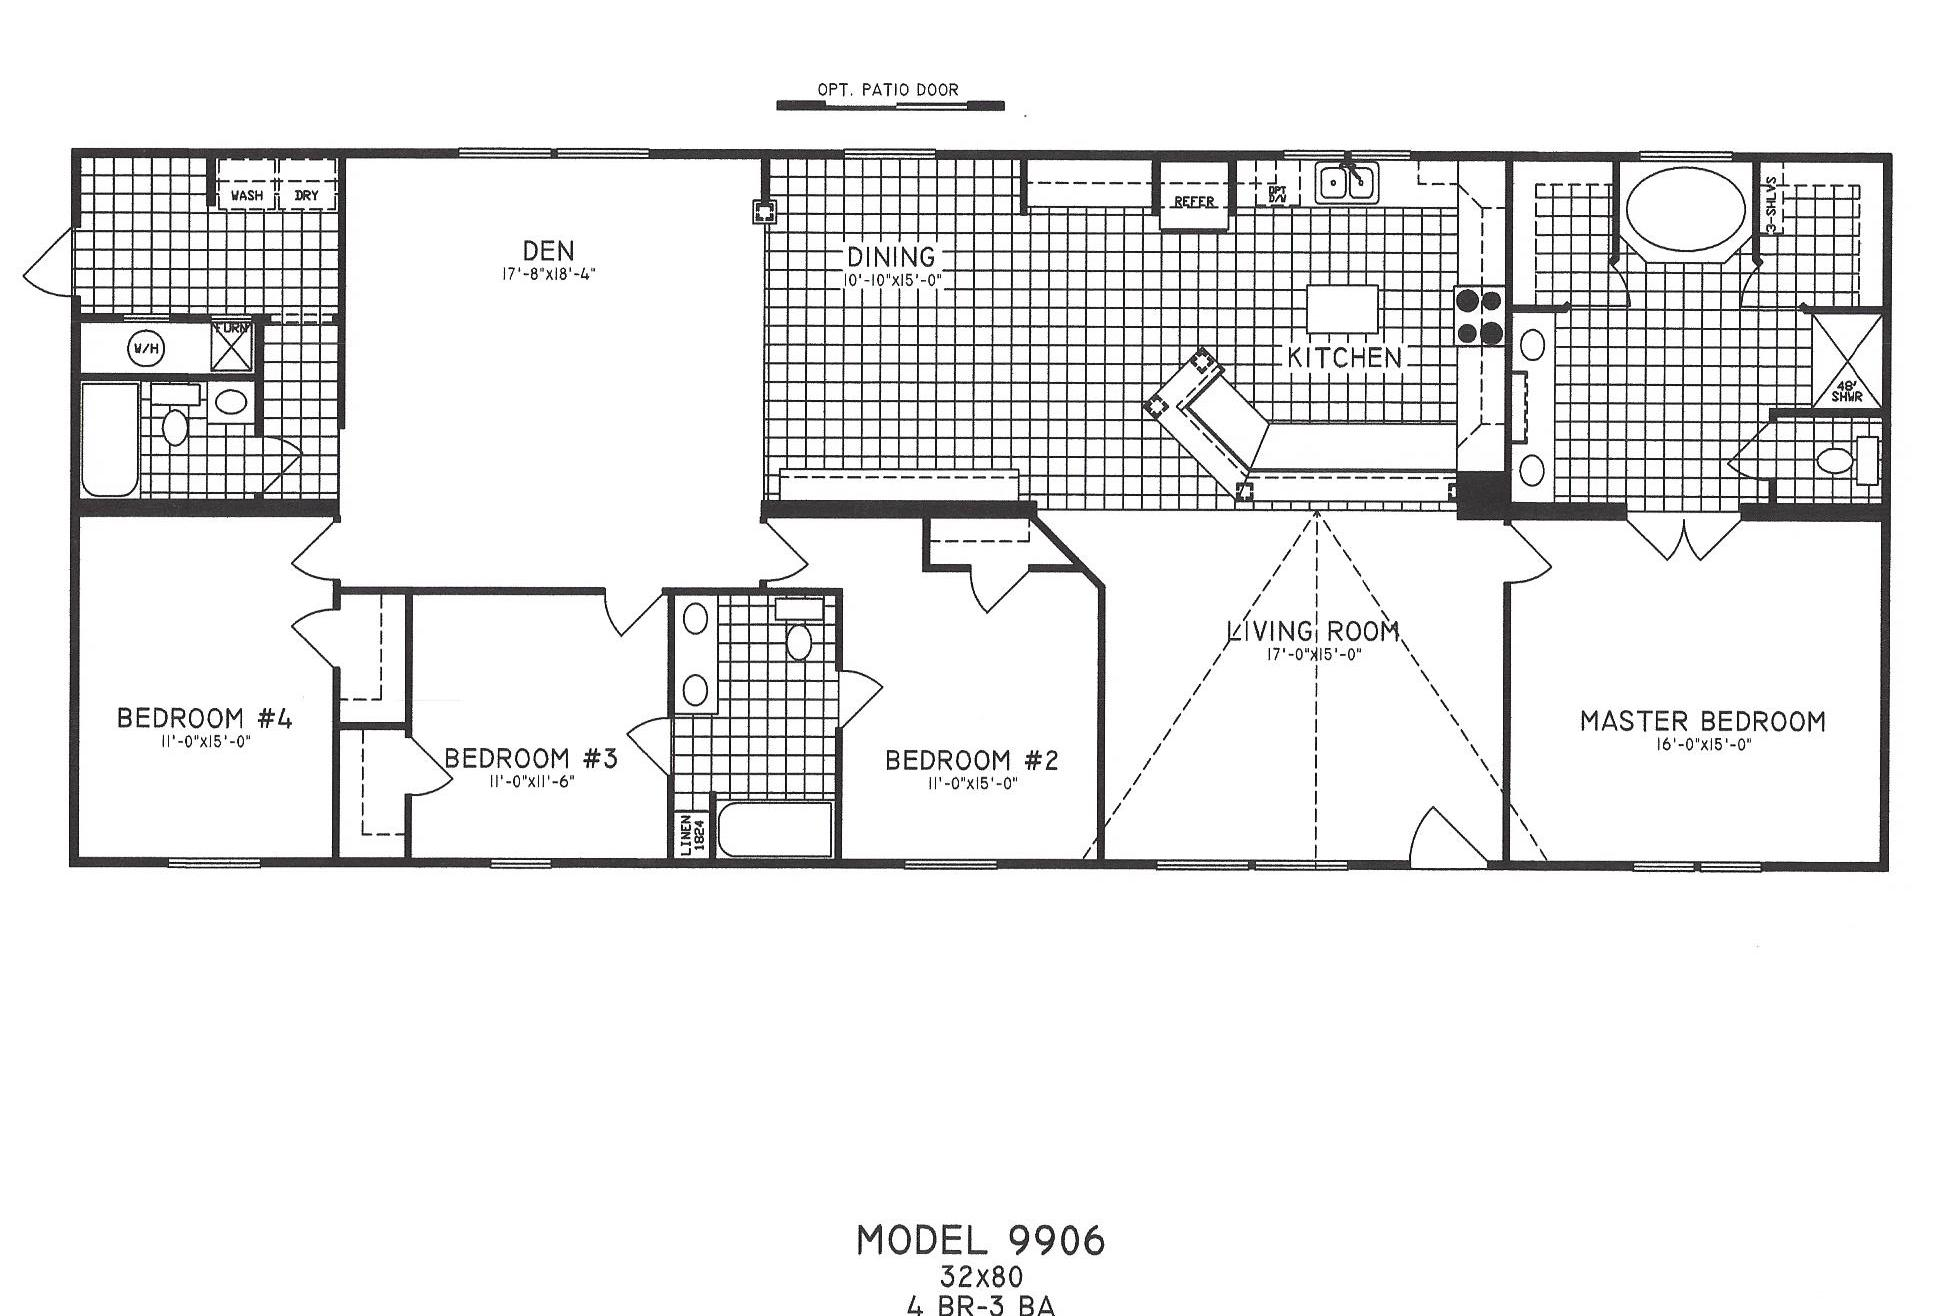 House Plans With Jack And Jill Bathroom Amazing House Plans